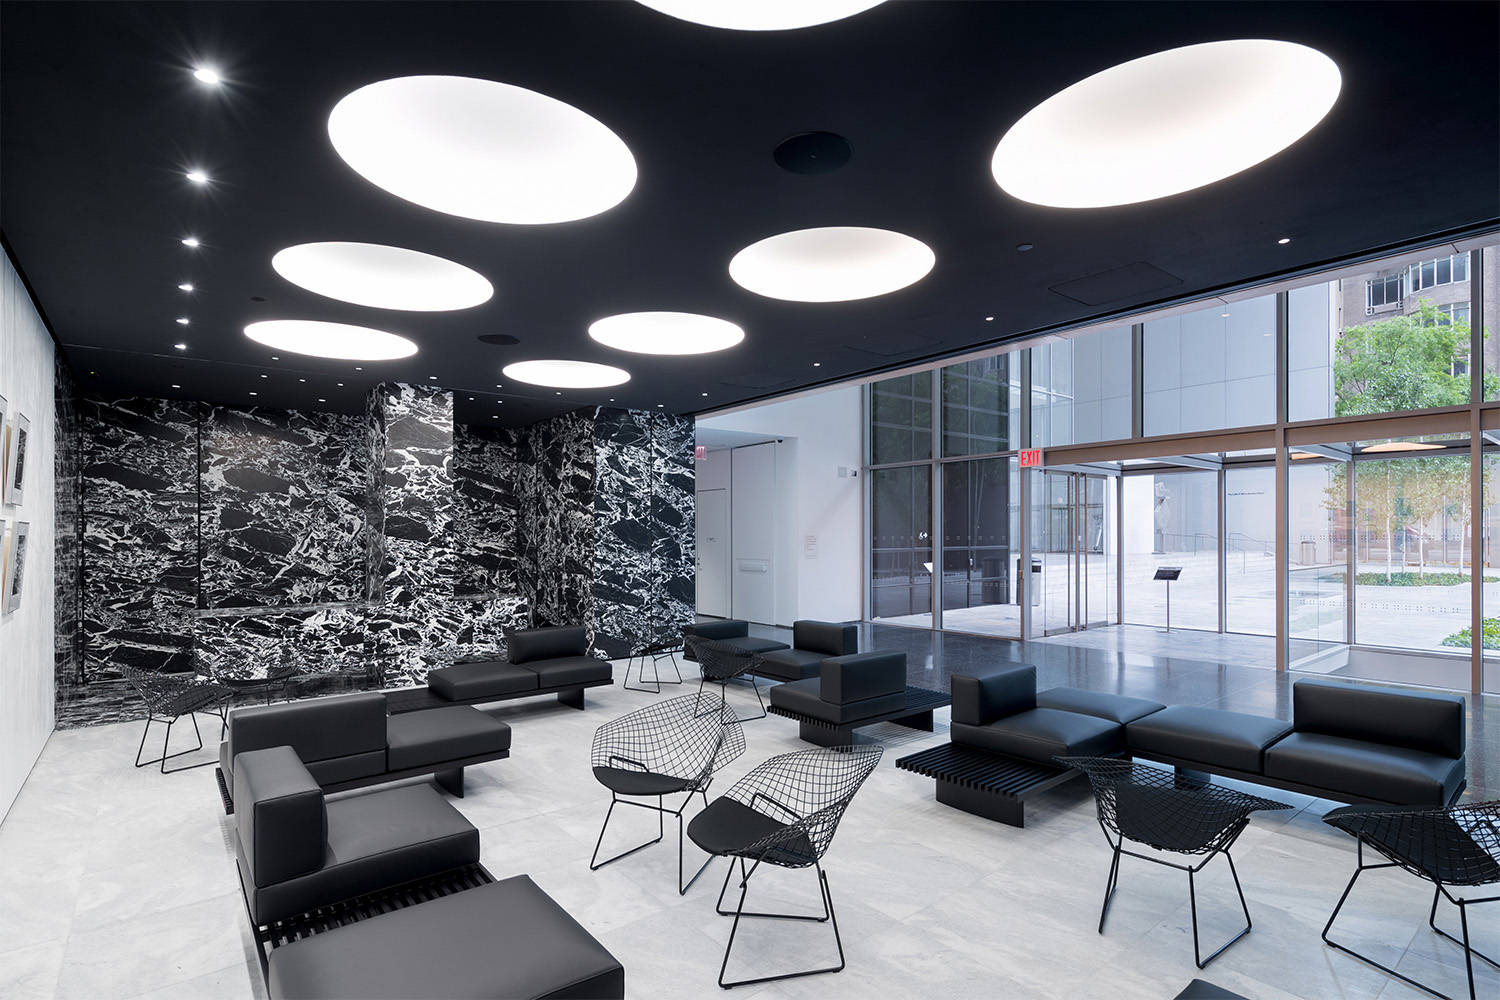 Interior view of The Museum of Modern Art, Hess Lounge Photography by Iwan Baan